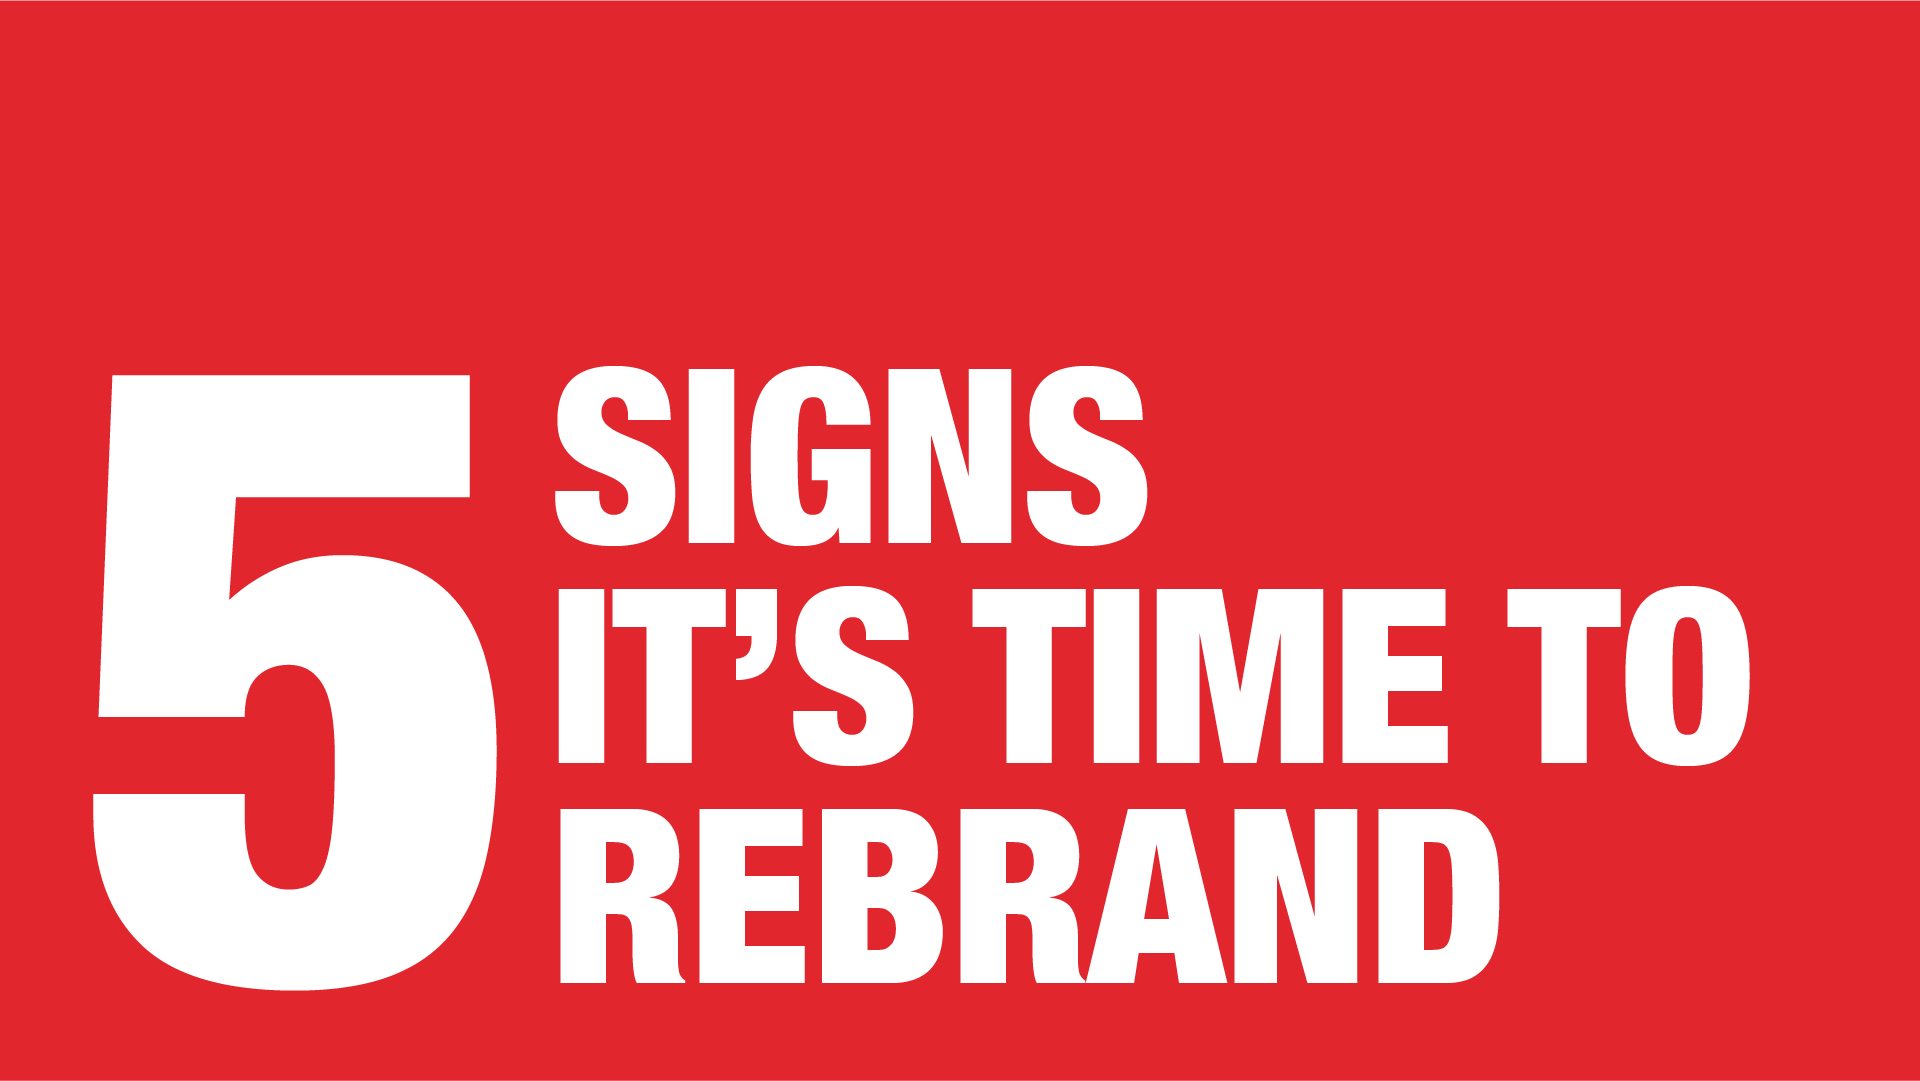 Manraj Ubhi - 5 signs it's time to rebrand